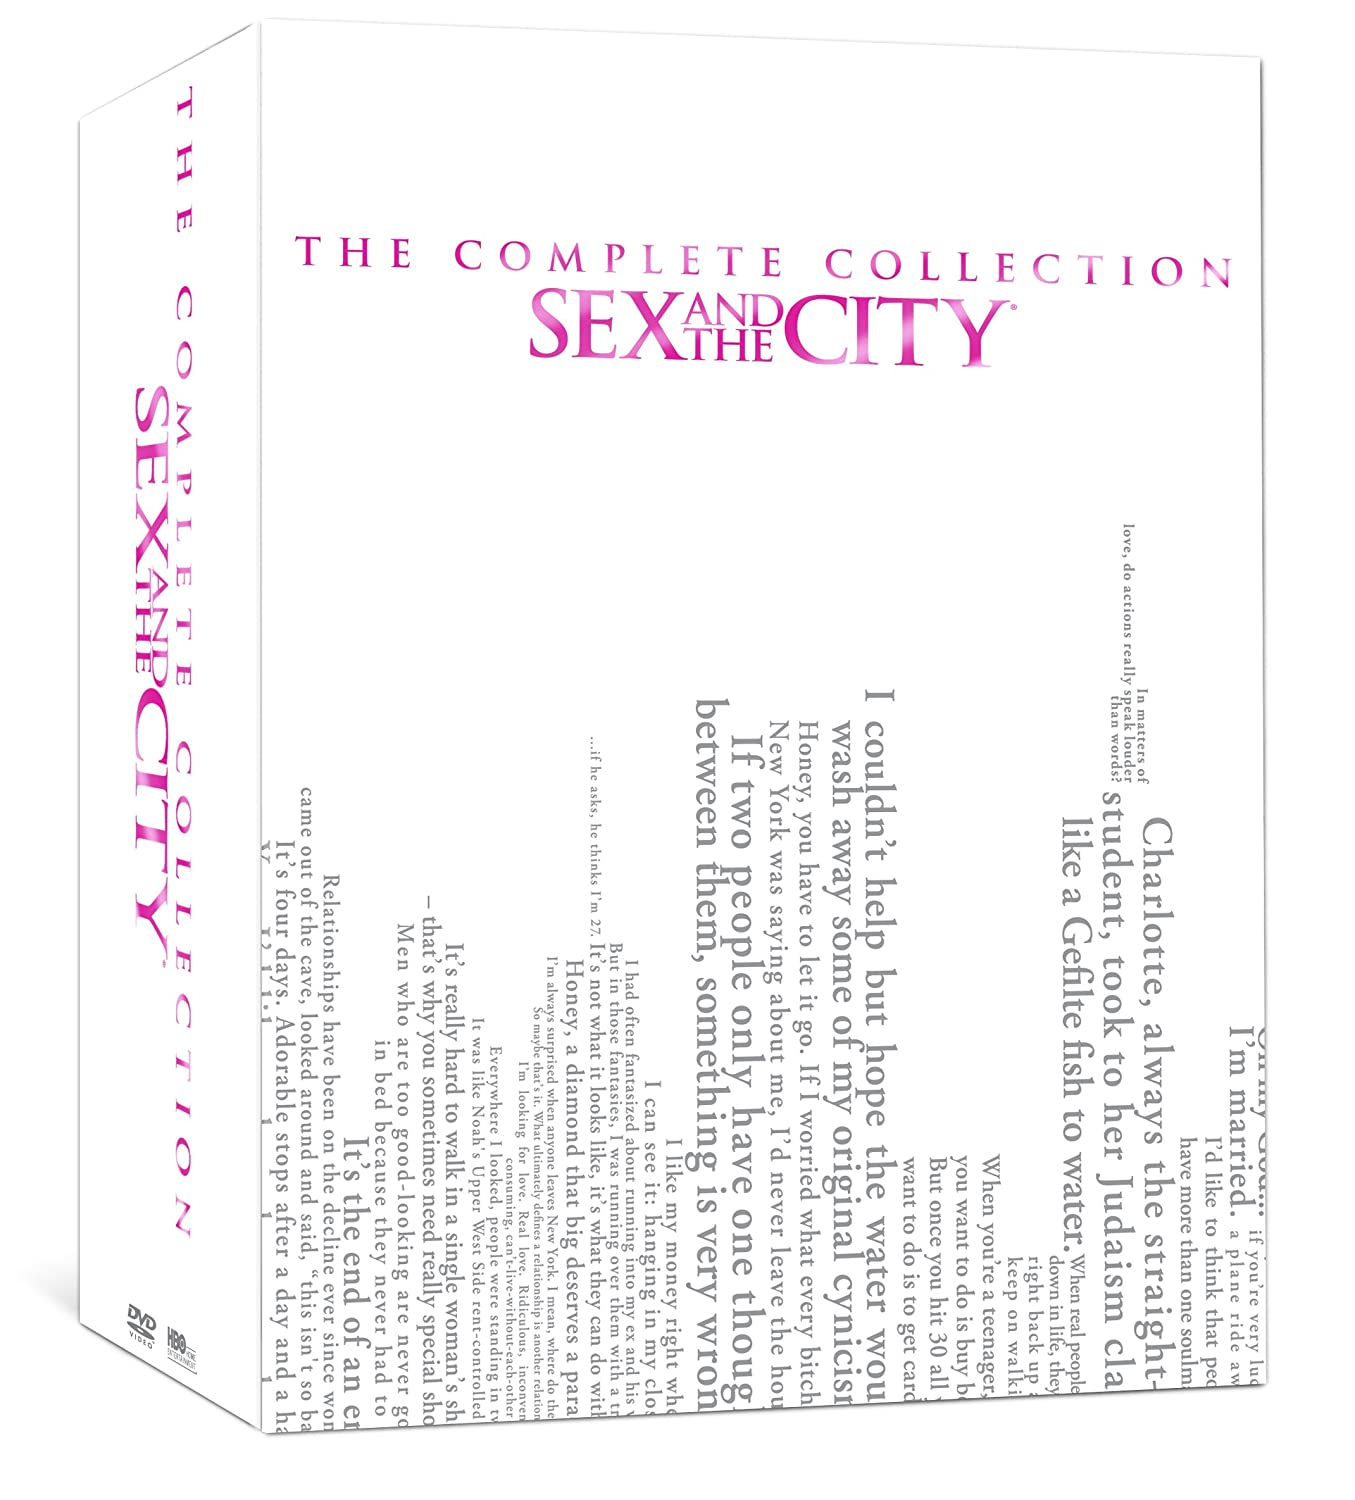 Sex and the City: The Complete Series Various HBO Comedies Movie